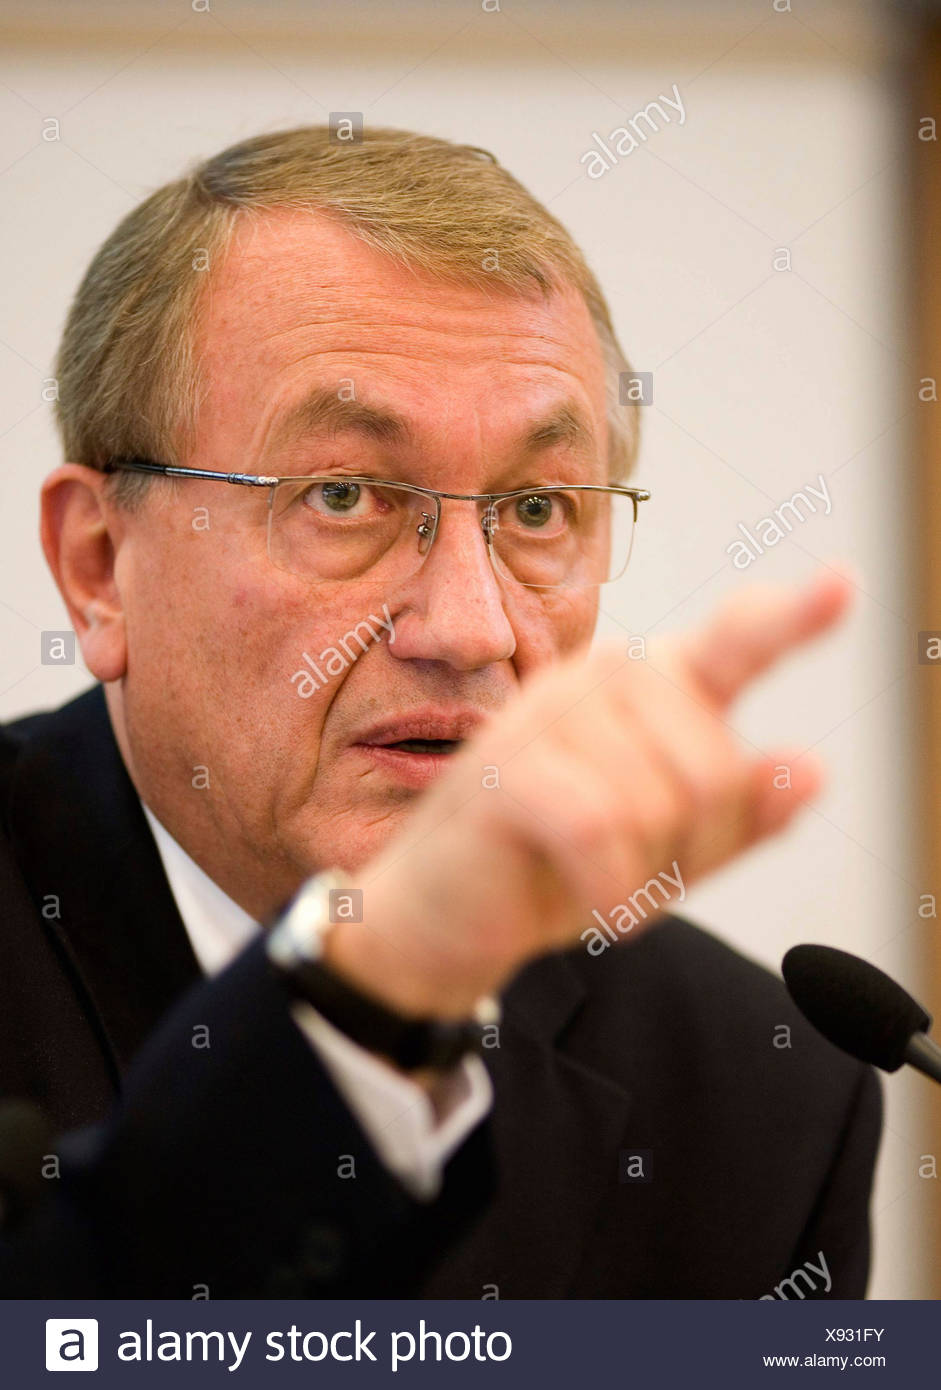 Dr. Uwe Franke, Chief Executive Officer CEO from the Deutsche BP AG - Stock Image